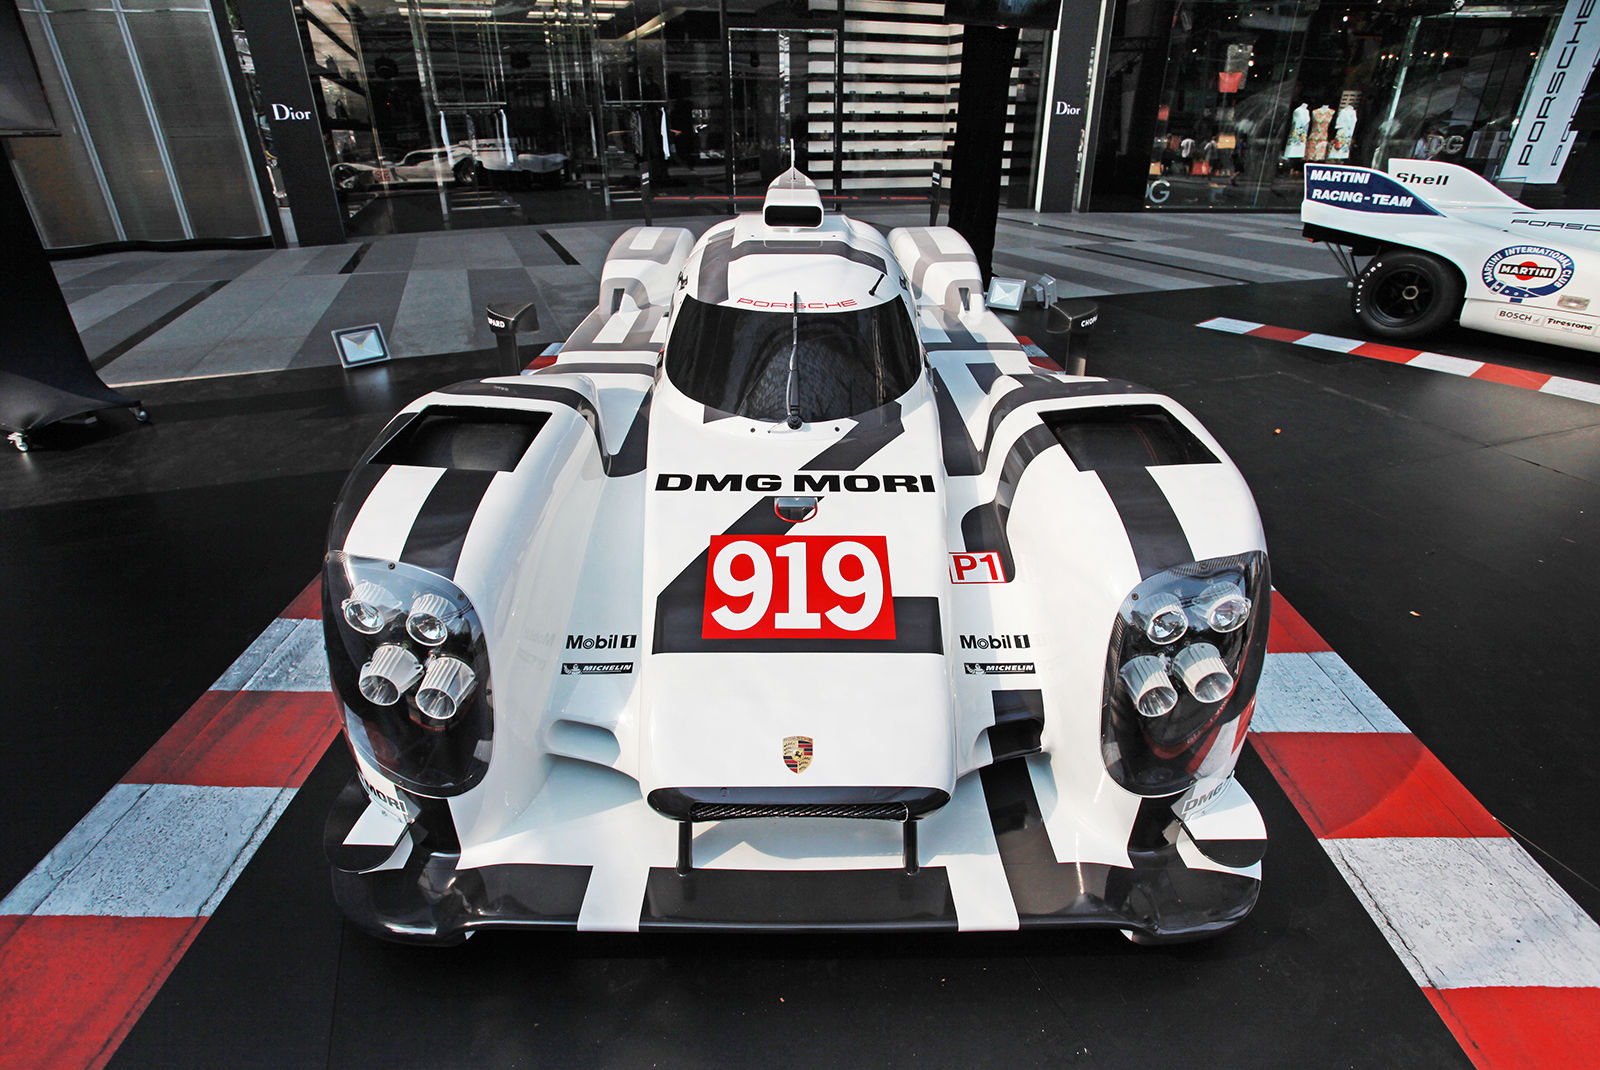 Here's Your Chance to Own a Porsche 919 Hybrid 1:1 Model Car